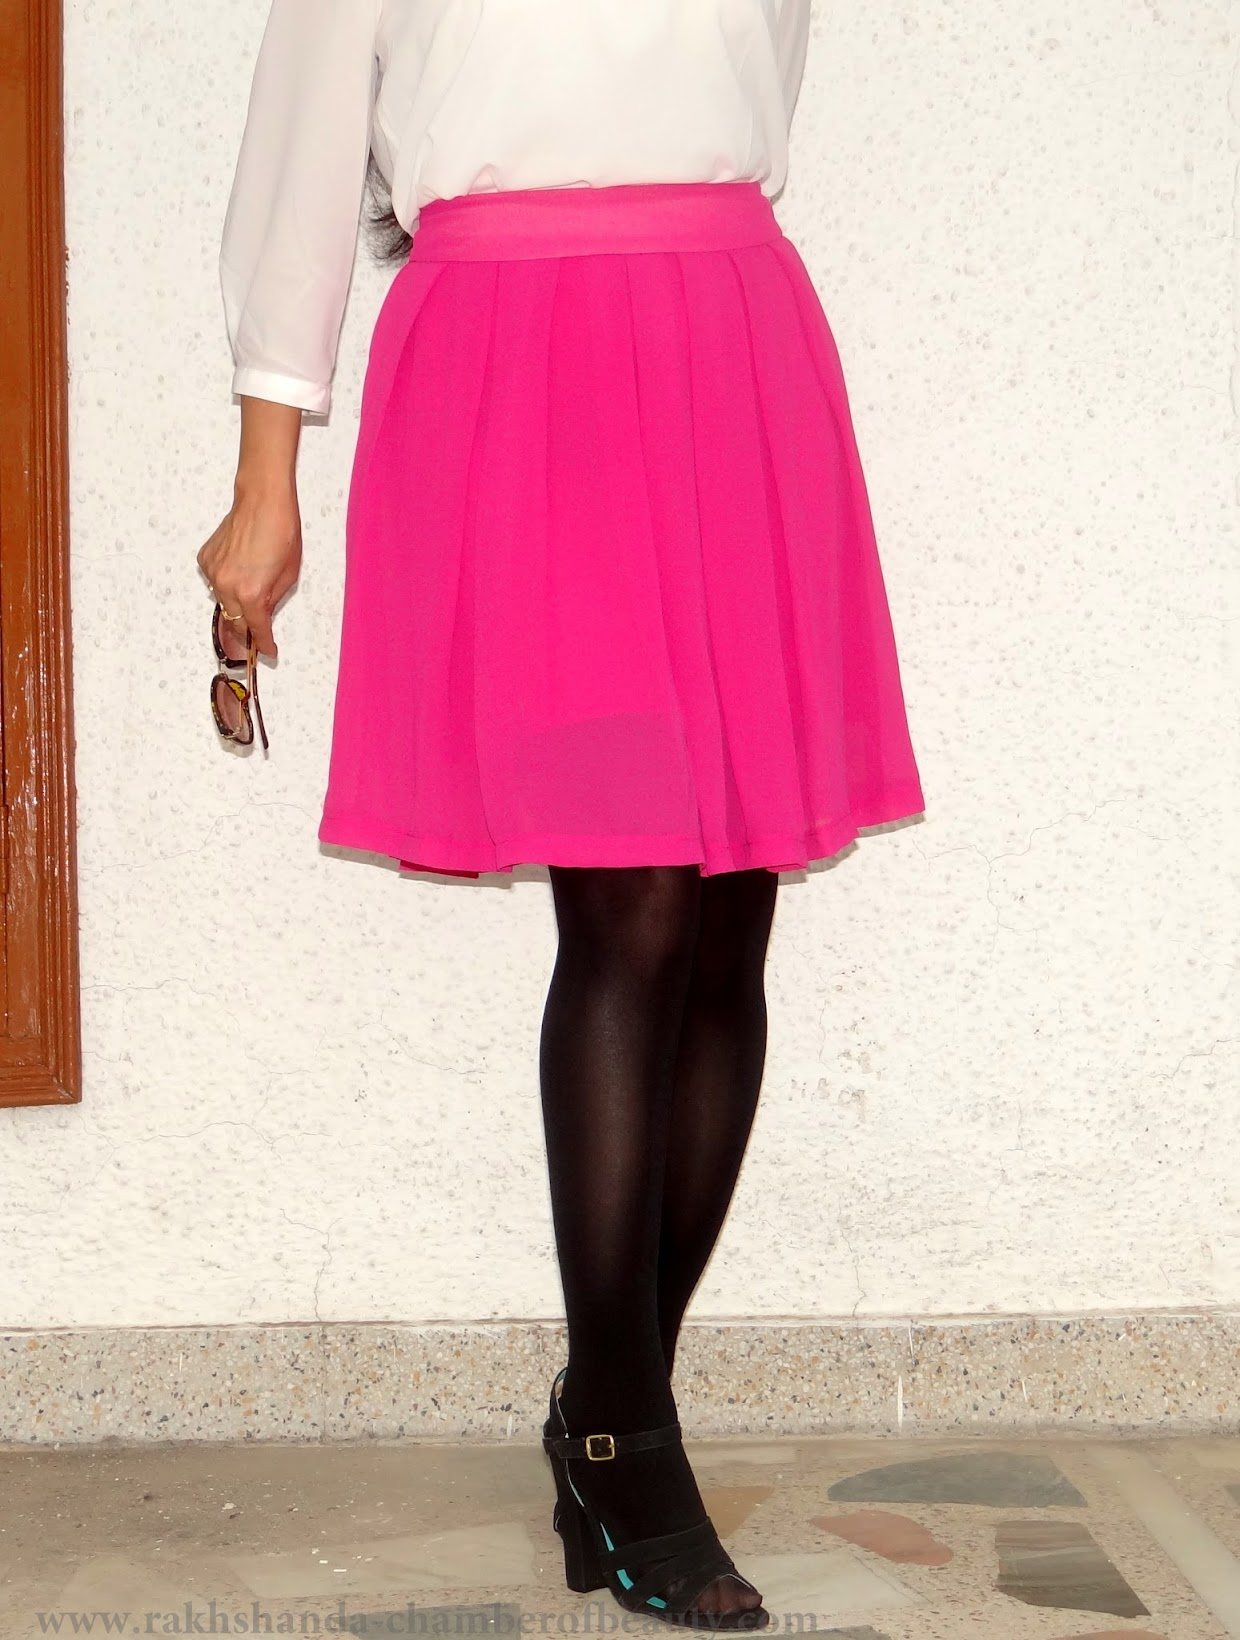 Walktrendy White top & pleated pink skirt-OOTD | Fashion trends 2015, how to style a skater skirt, summer fashion, OOTD, Indian fashion blogger, Chamber of Beauty